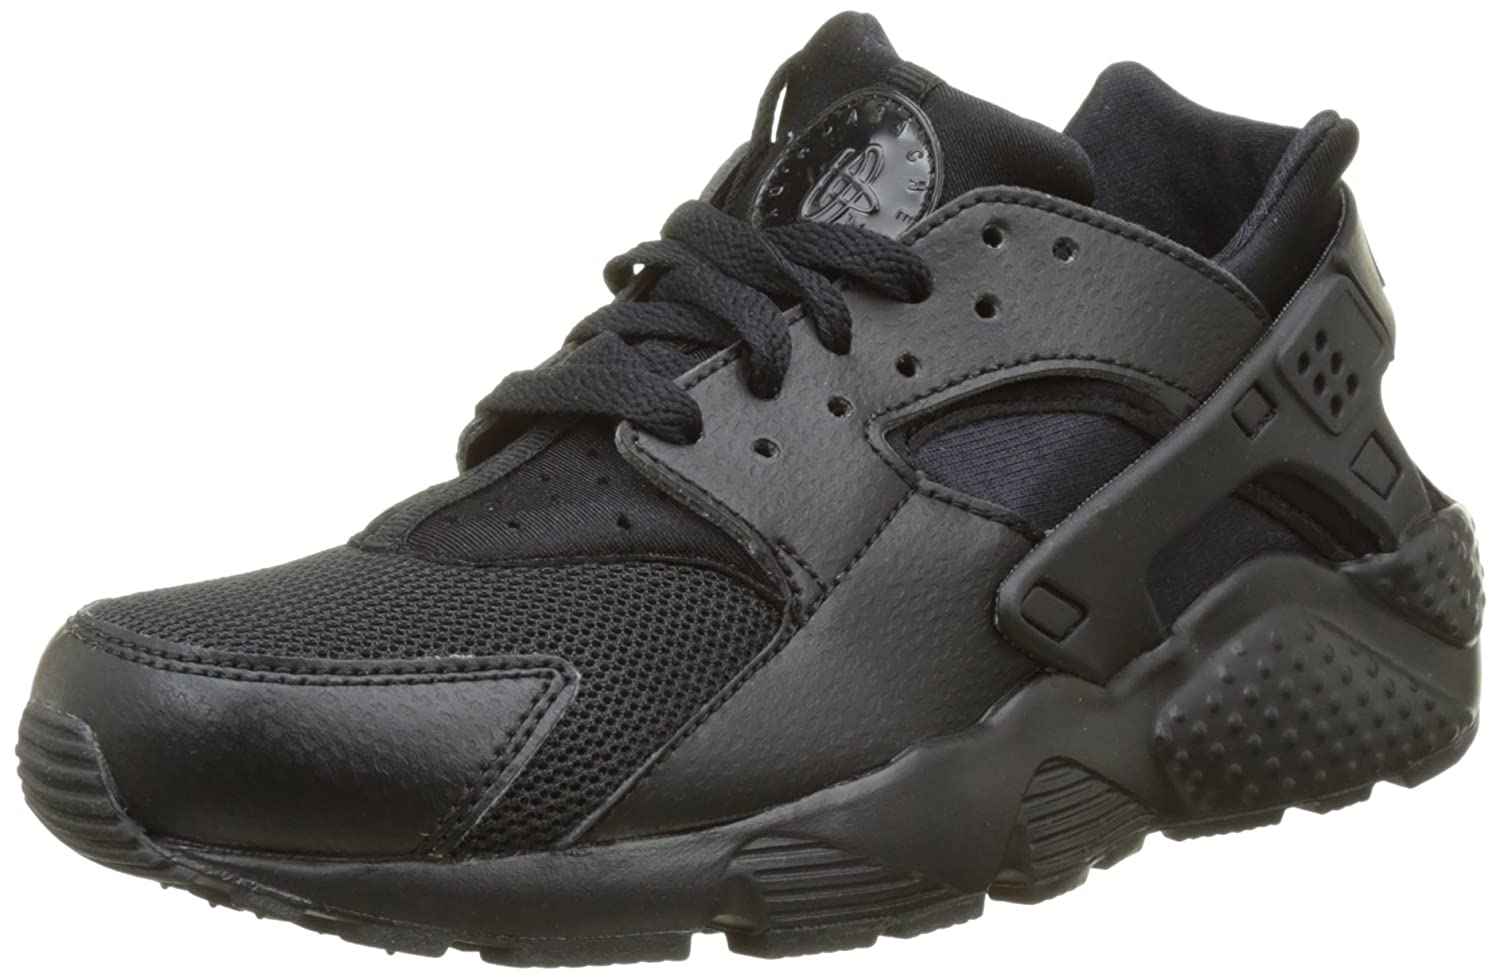 timeless design 38815 1d44b Amazon.com  Nike Huarache Run Gs 654275-016 Kids, black black-black,6 US  Big Kid  Sports   Outdoors